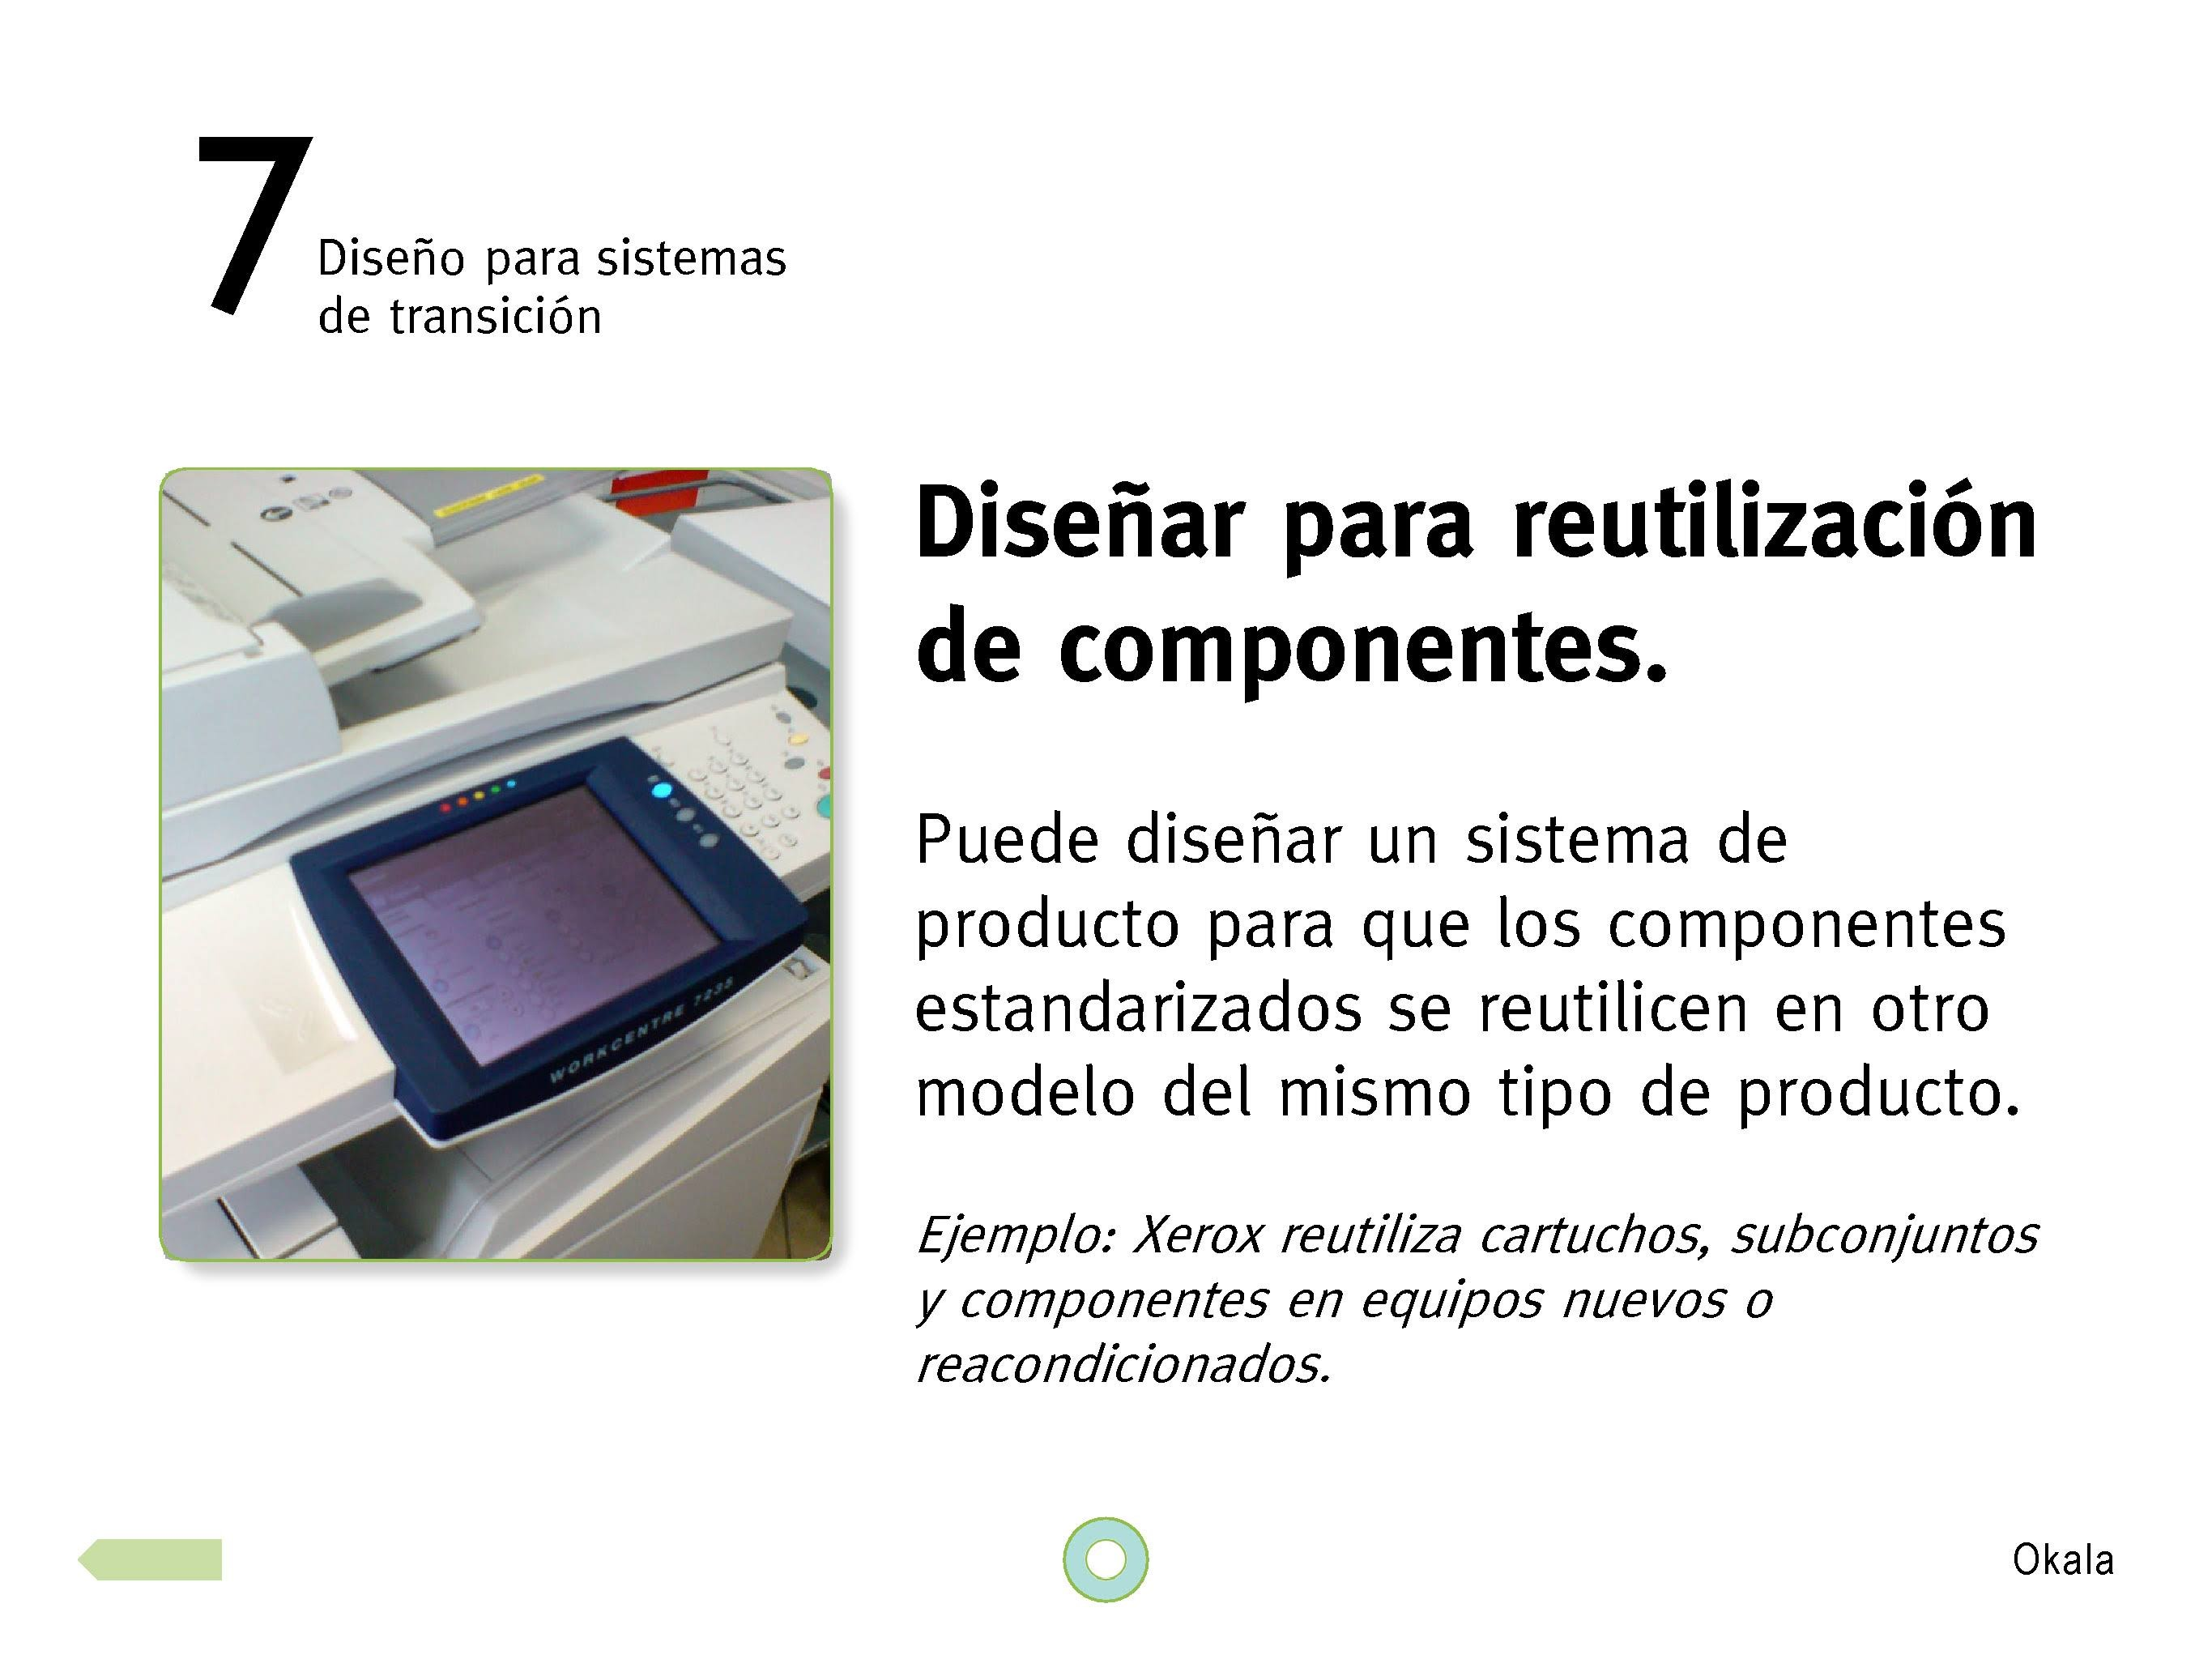 okala-ecodesign-strategy-guide-2012-spanish.new_page_40-1